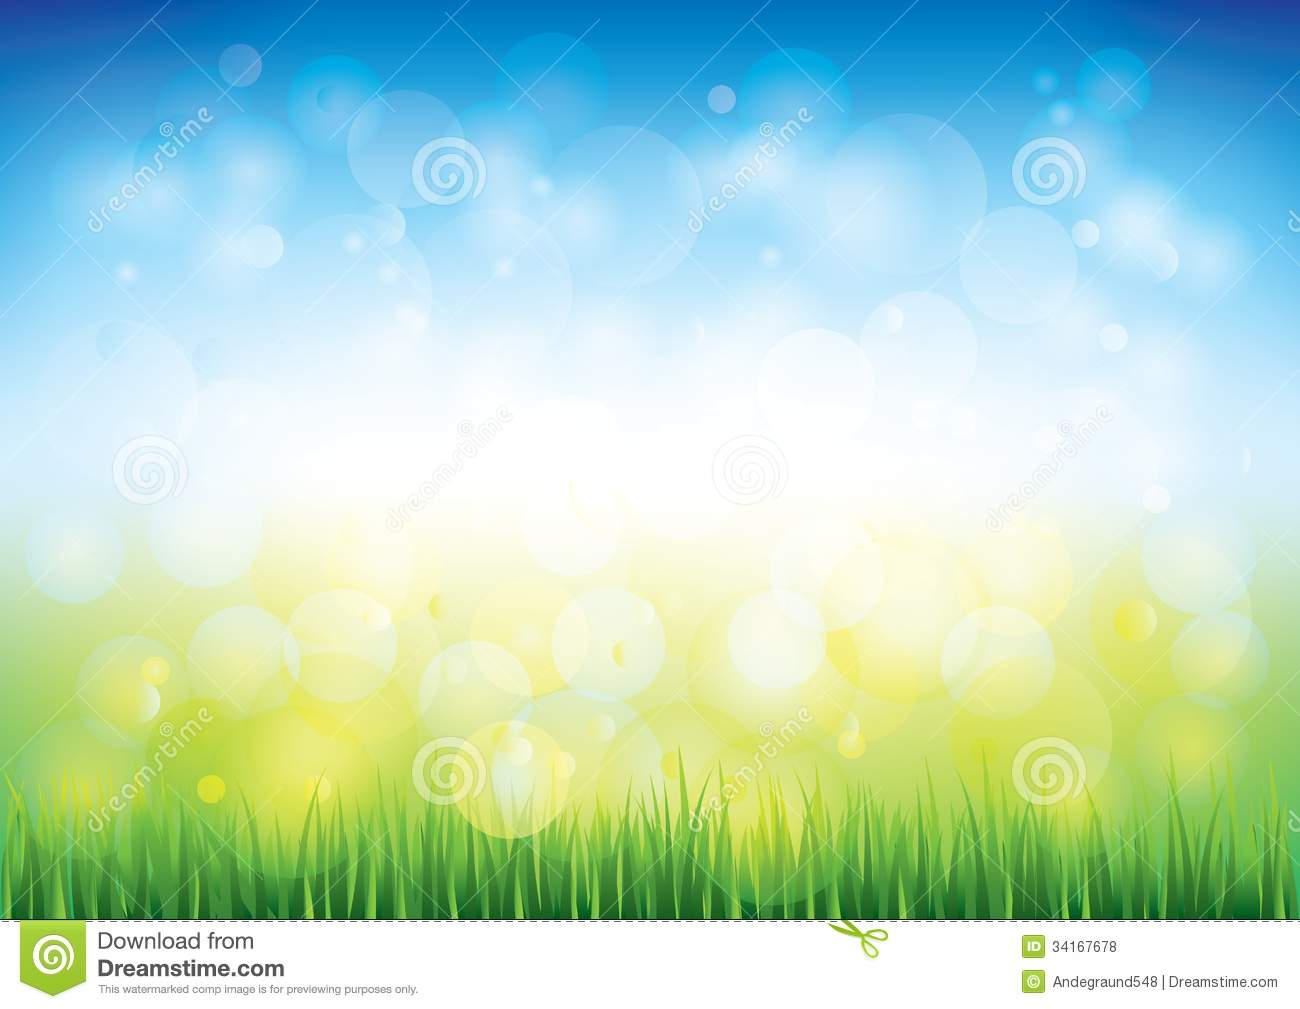 Blue Sky And Grass Vector Background Stock Vector ...